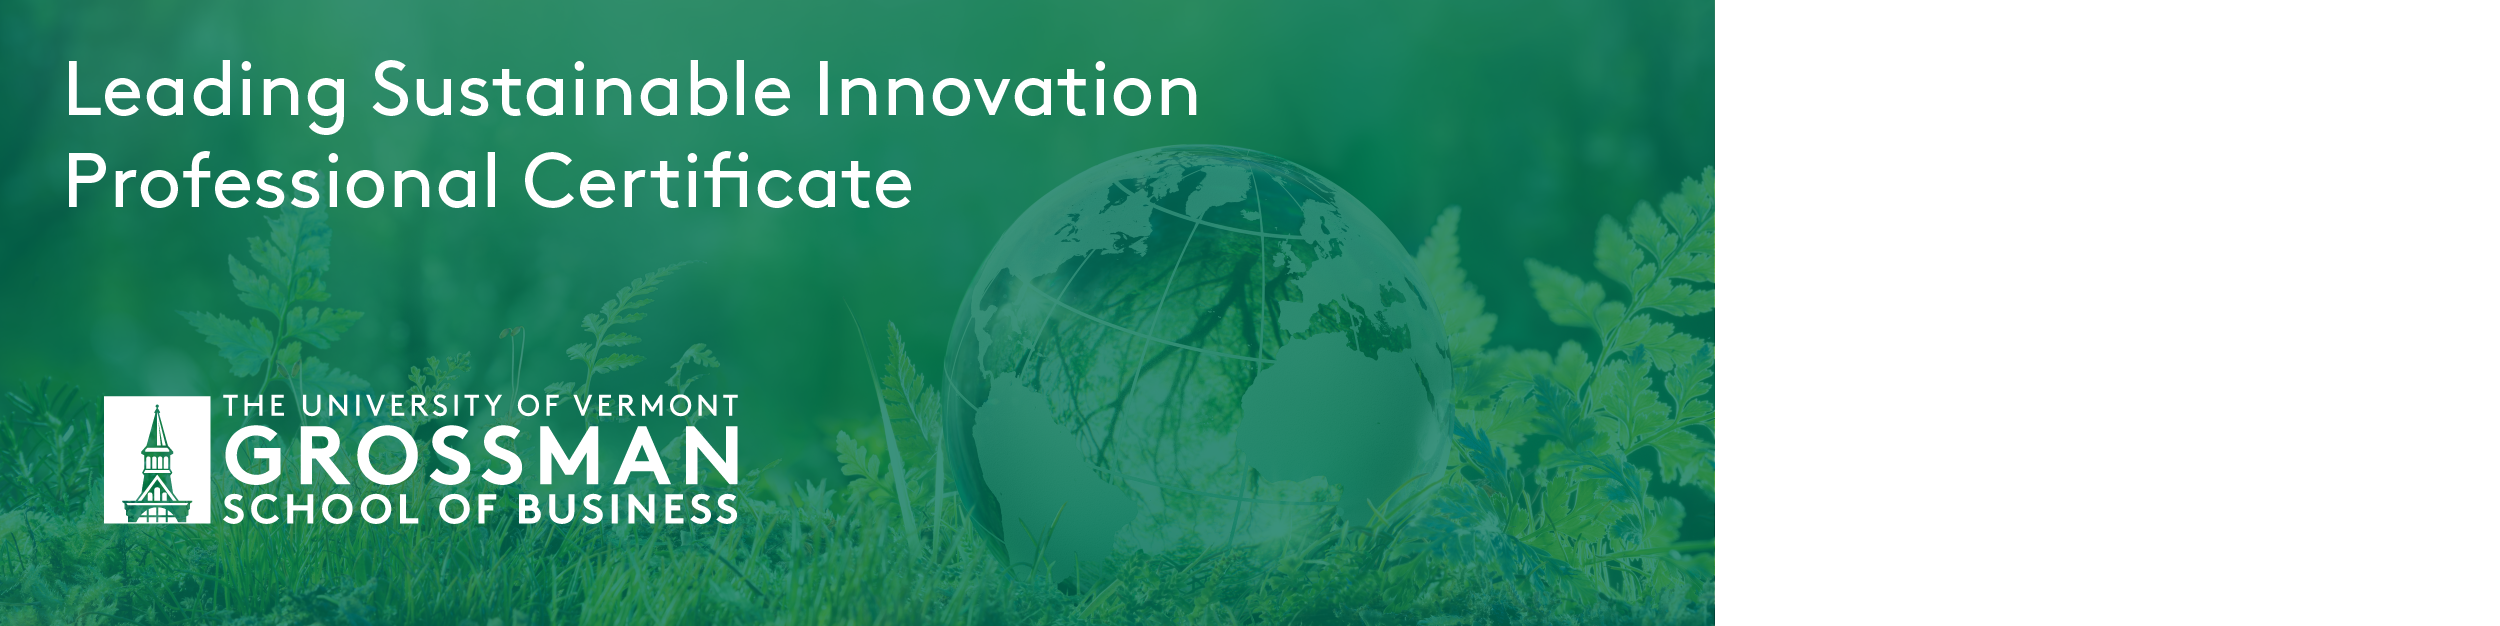 uvm, grossman school of business, leading sustainable innovation professional certificate